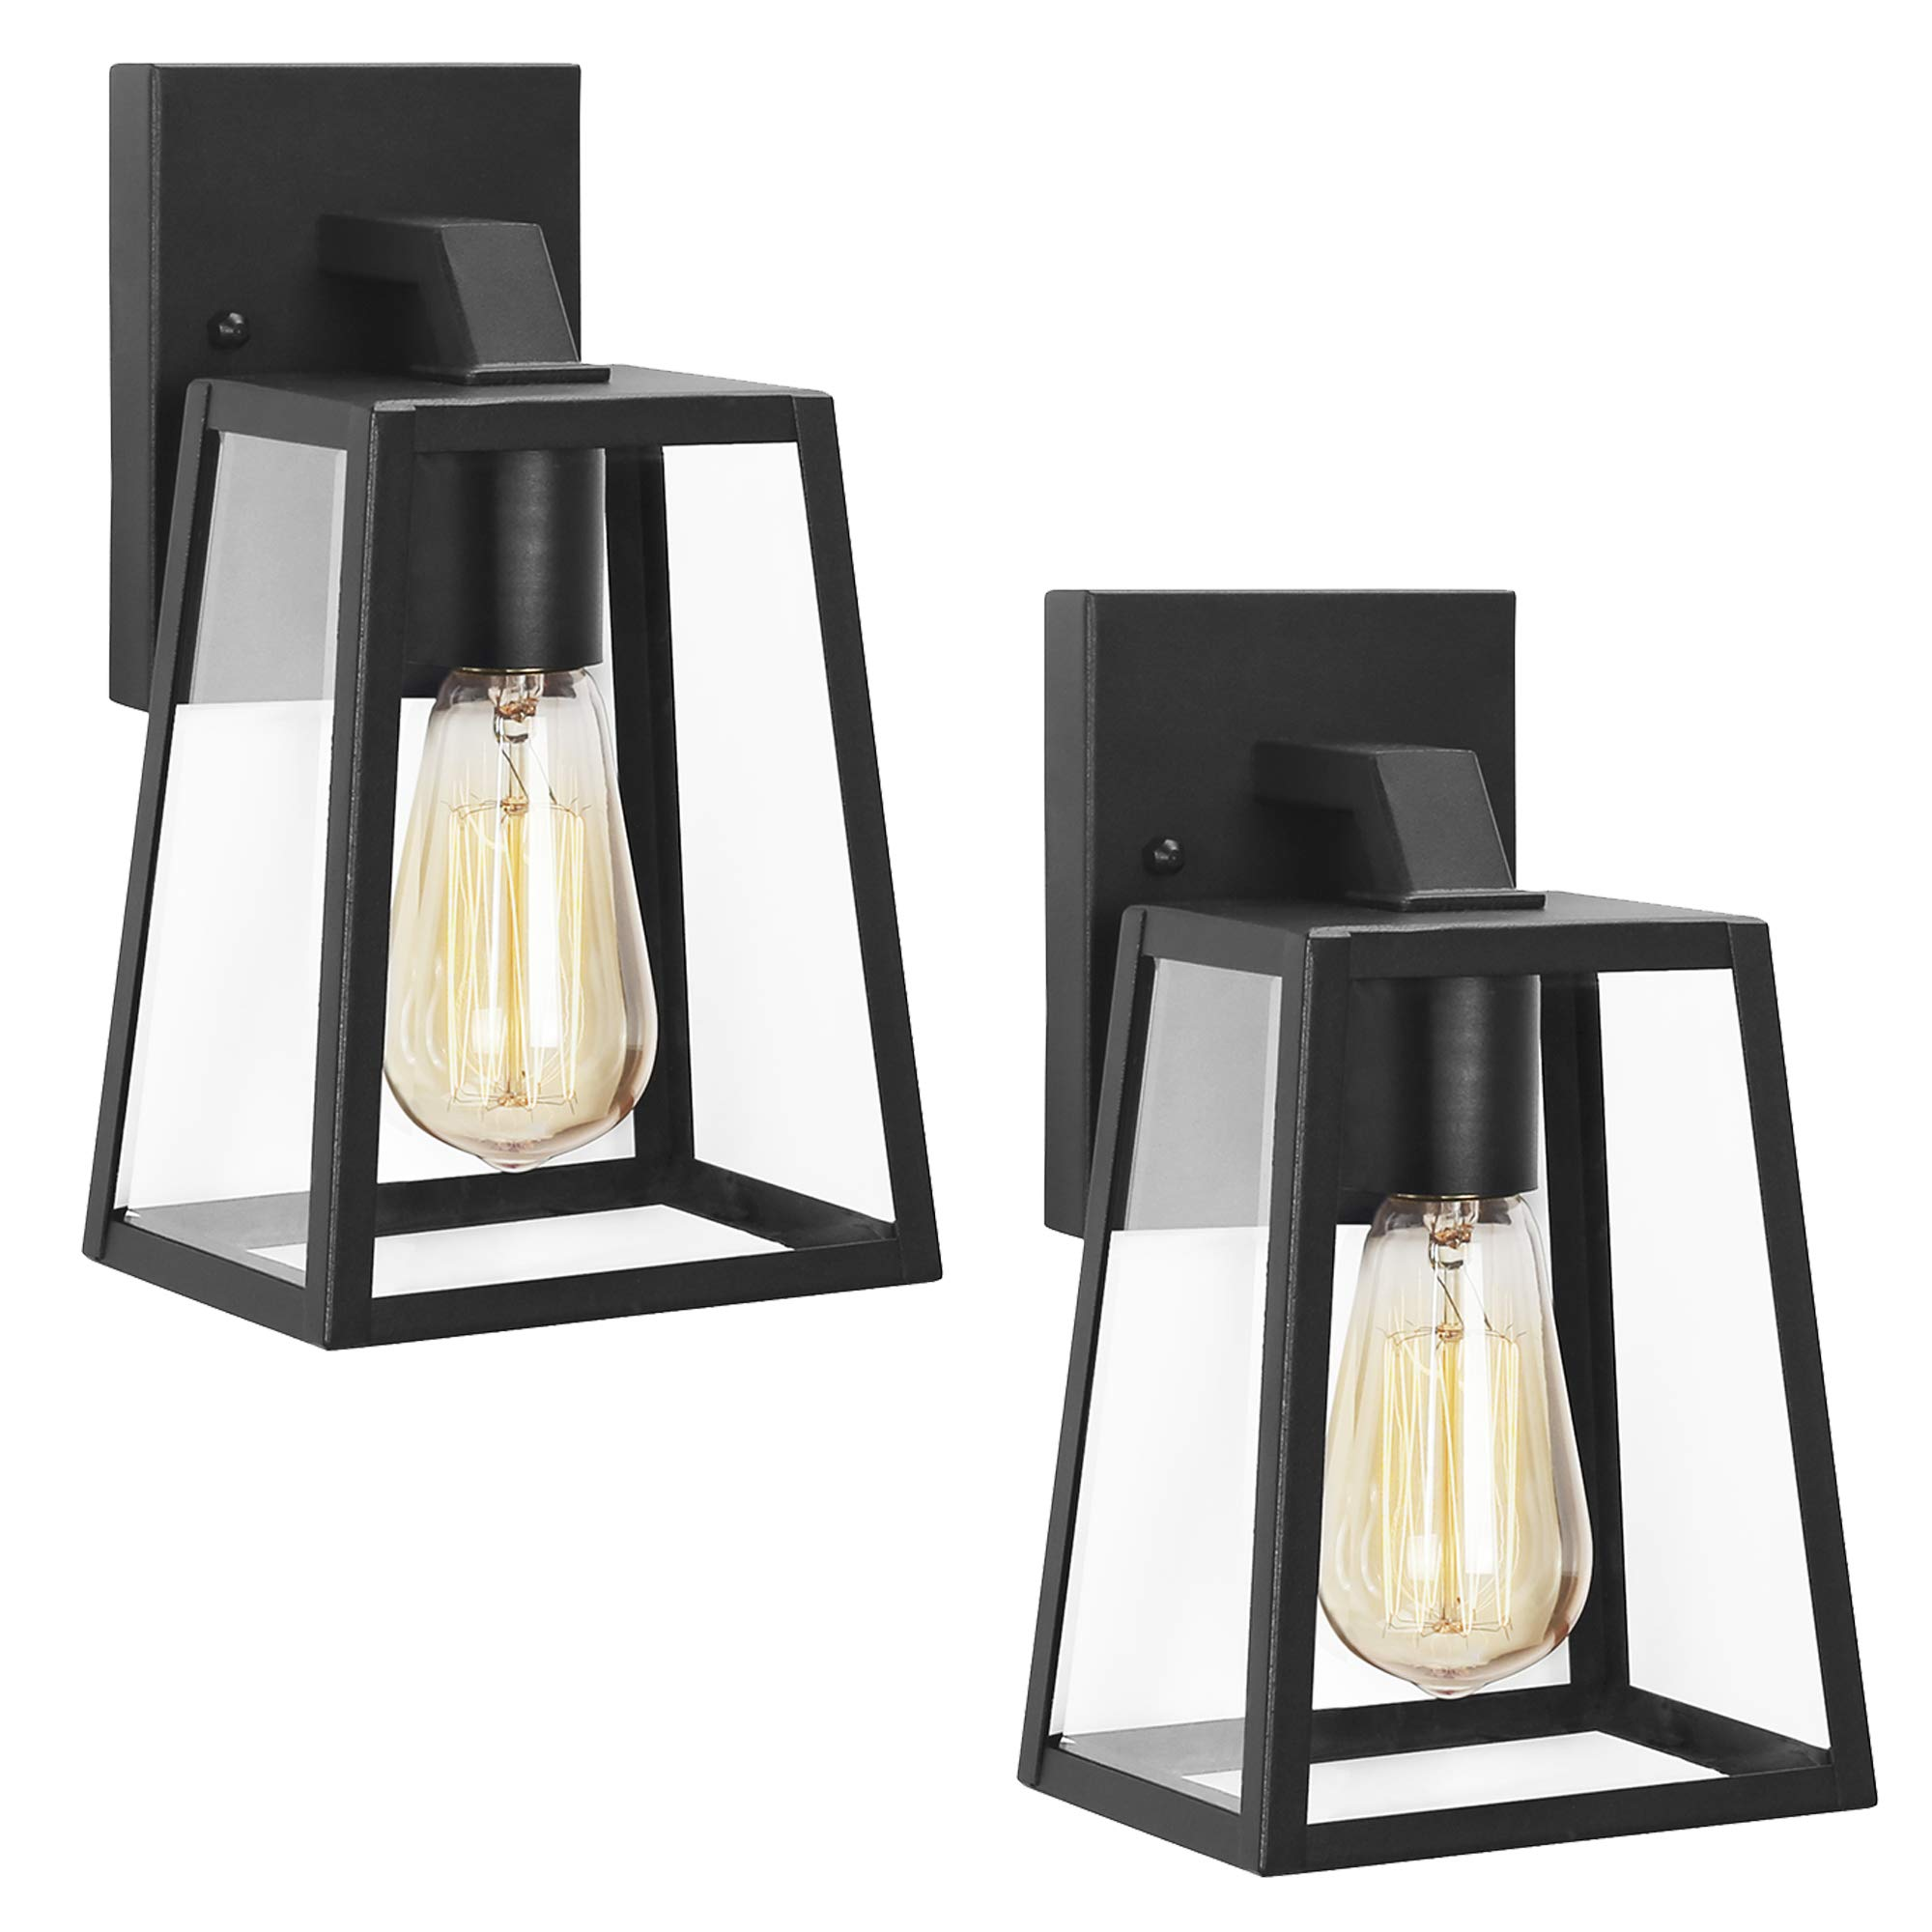 Emliviar Outdoor Wall Sconces 2 Pack, 1-Light Porch Lights Fixture, Black Finish with Clear Bevel Glass, OS-1803AW1-2PK by EMLIVIAR